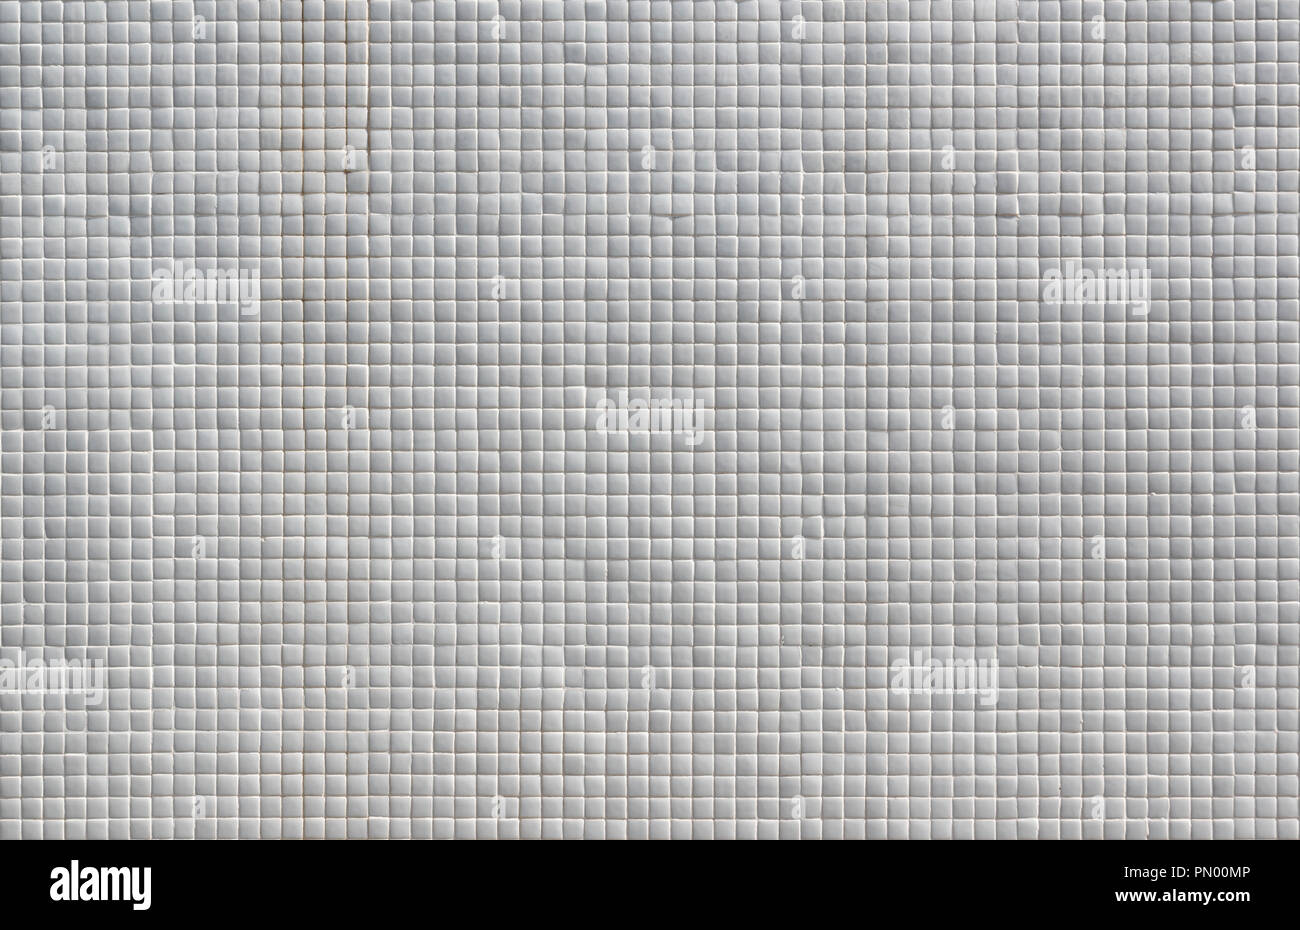 Tiles texture immagini tiles texture fotos stock alamy